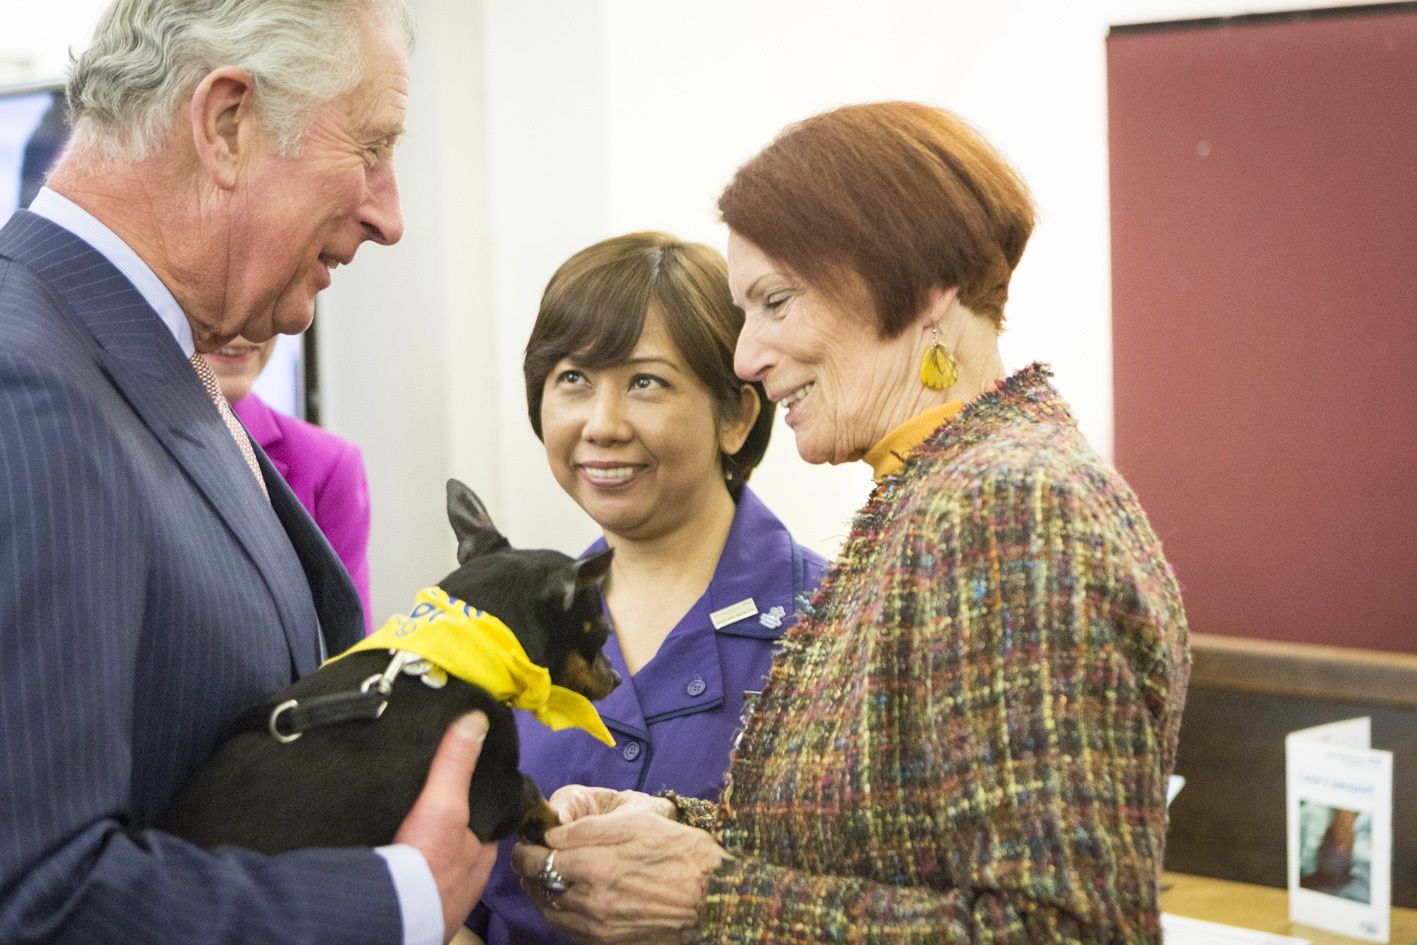 The Prince of Wales attended a Reception to mark the Society's Seventieth Anniversary